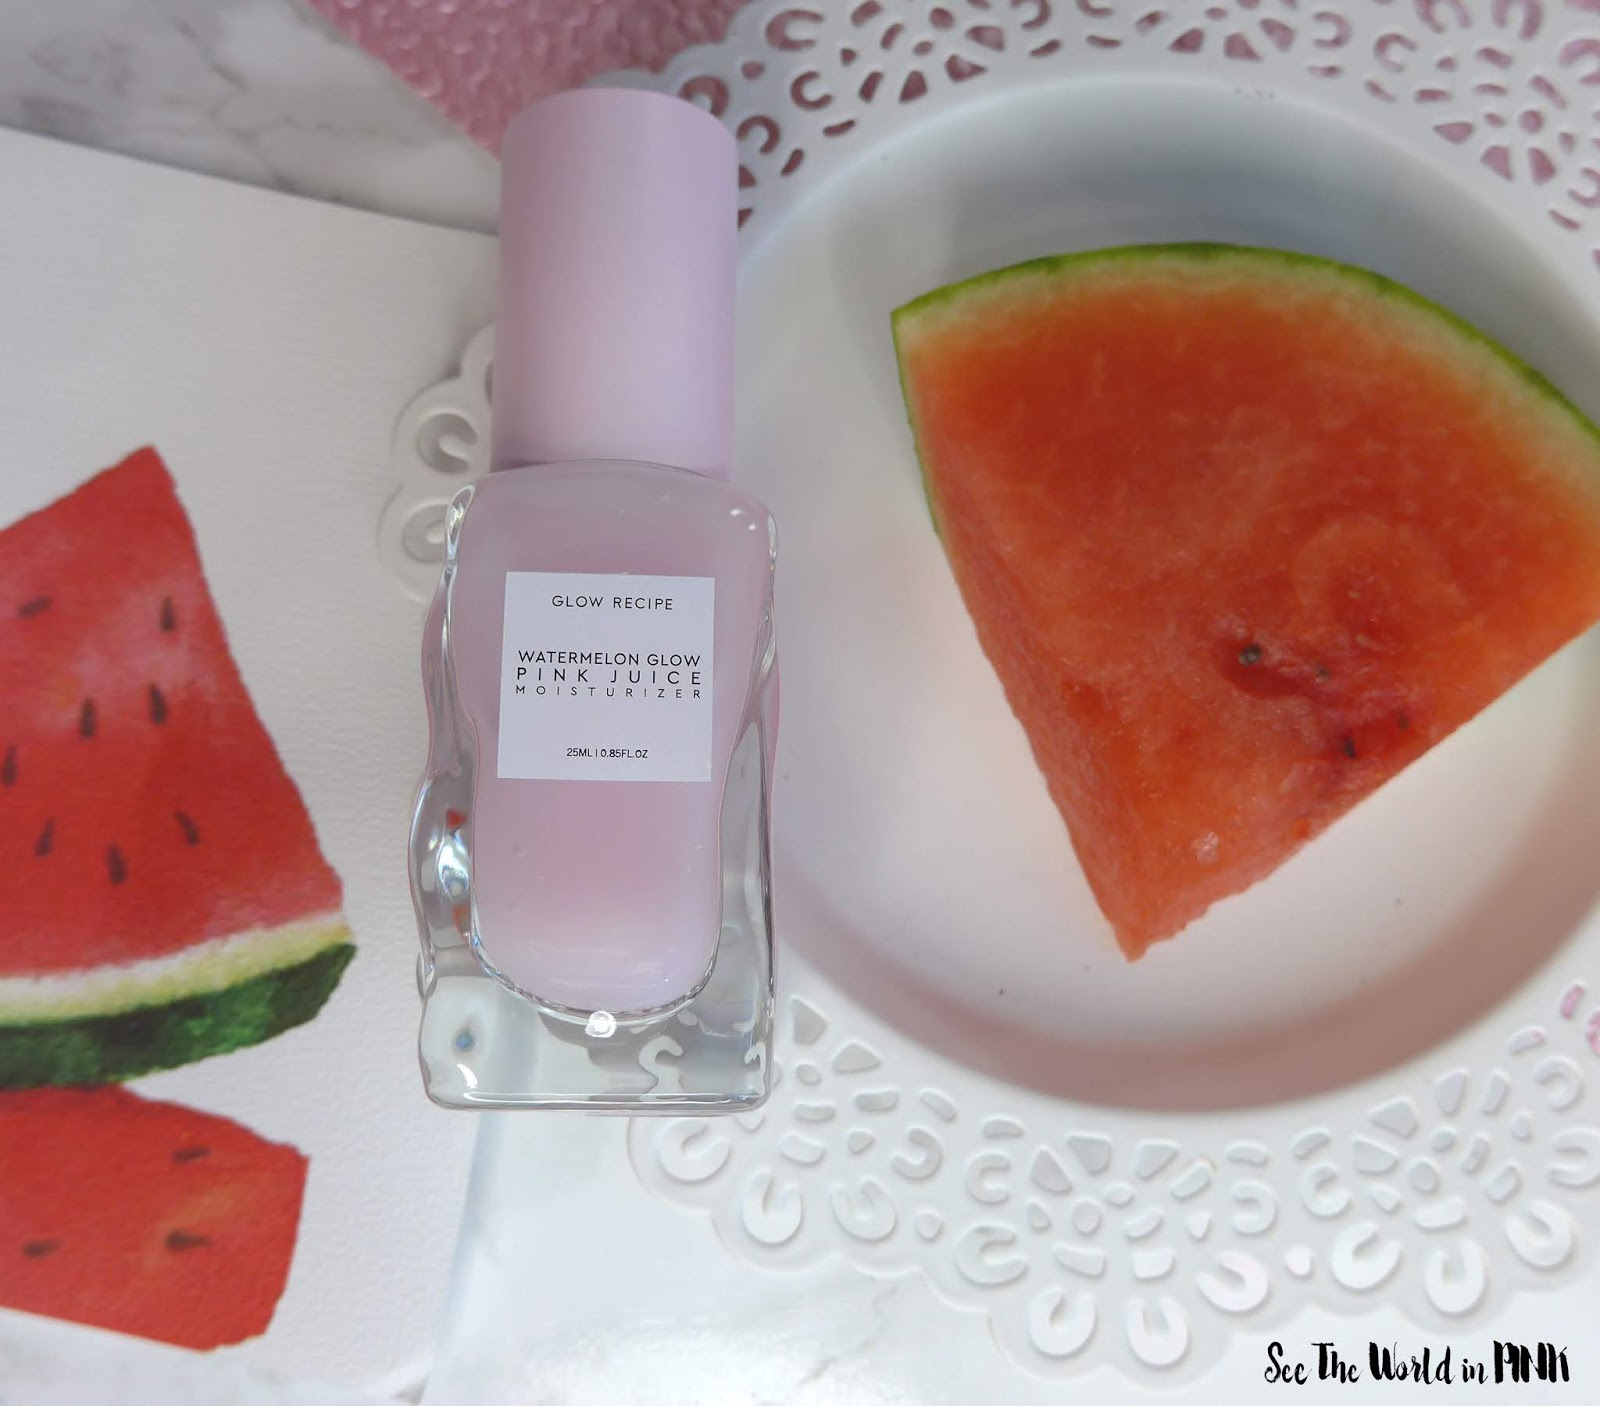 Glow Recipe Watermelon Pink Juice Moisturizer